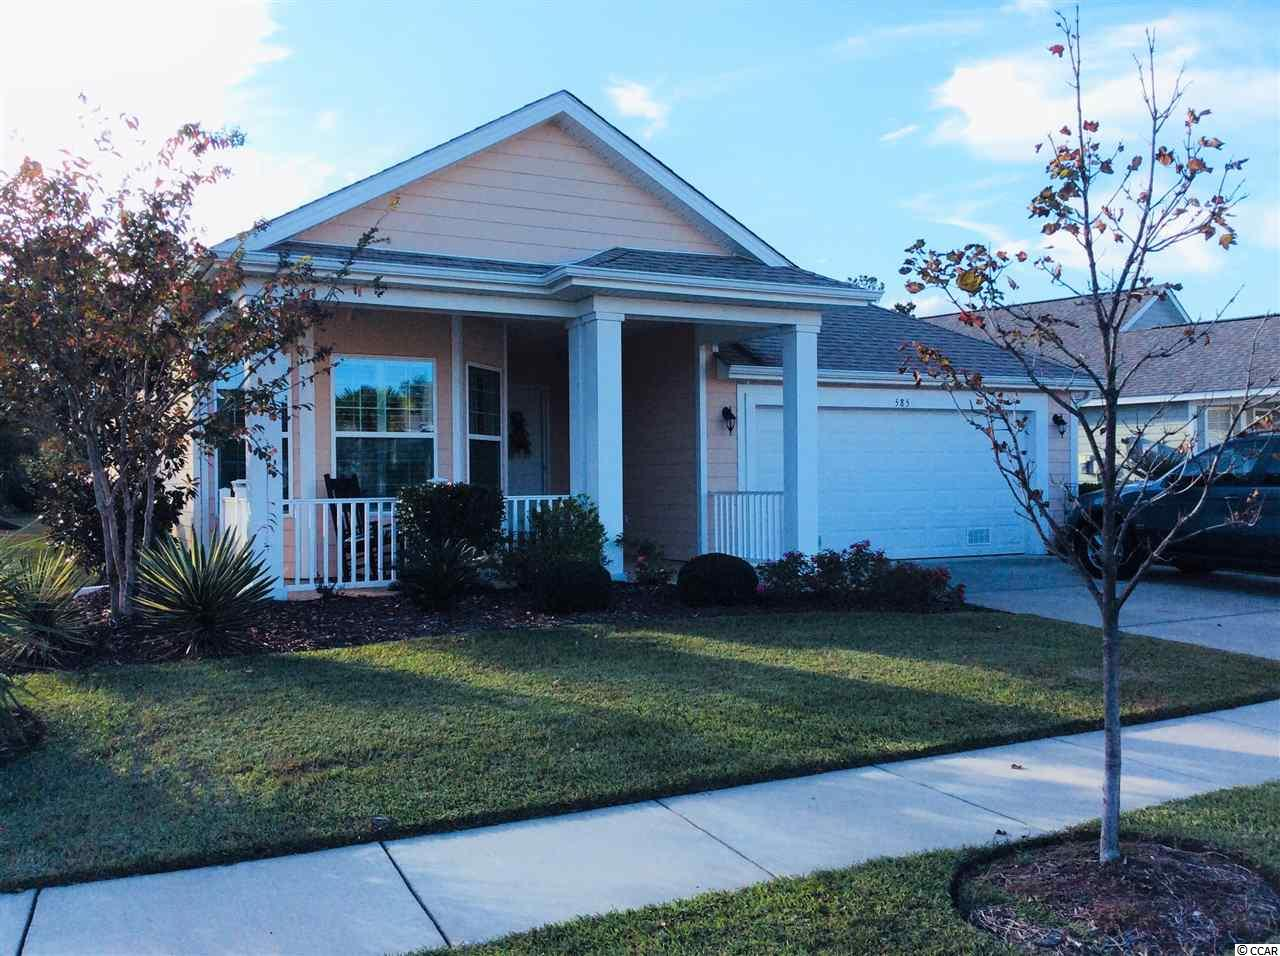 Single Family Home for Sale at 585 GRAND CYPRESS WAY 585 GRAND CYPRESS WAY Murrells Inlet, South Carolina 29576 United States